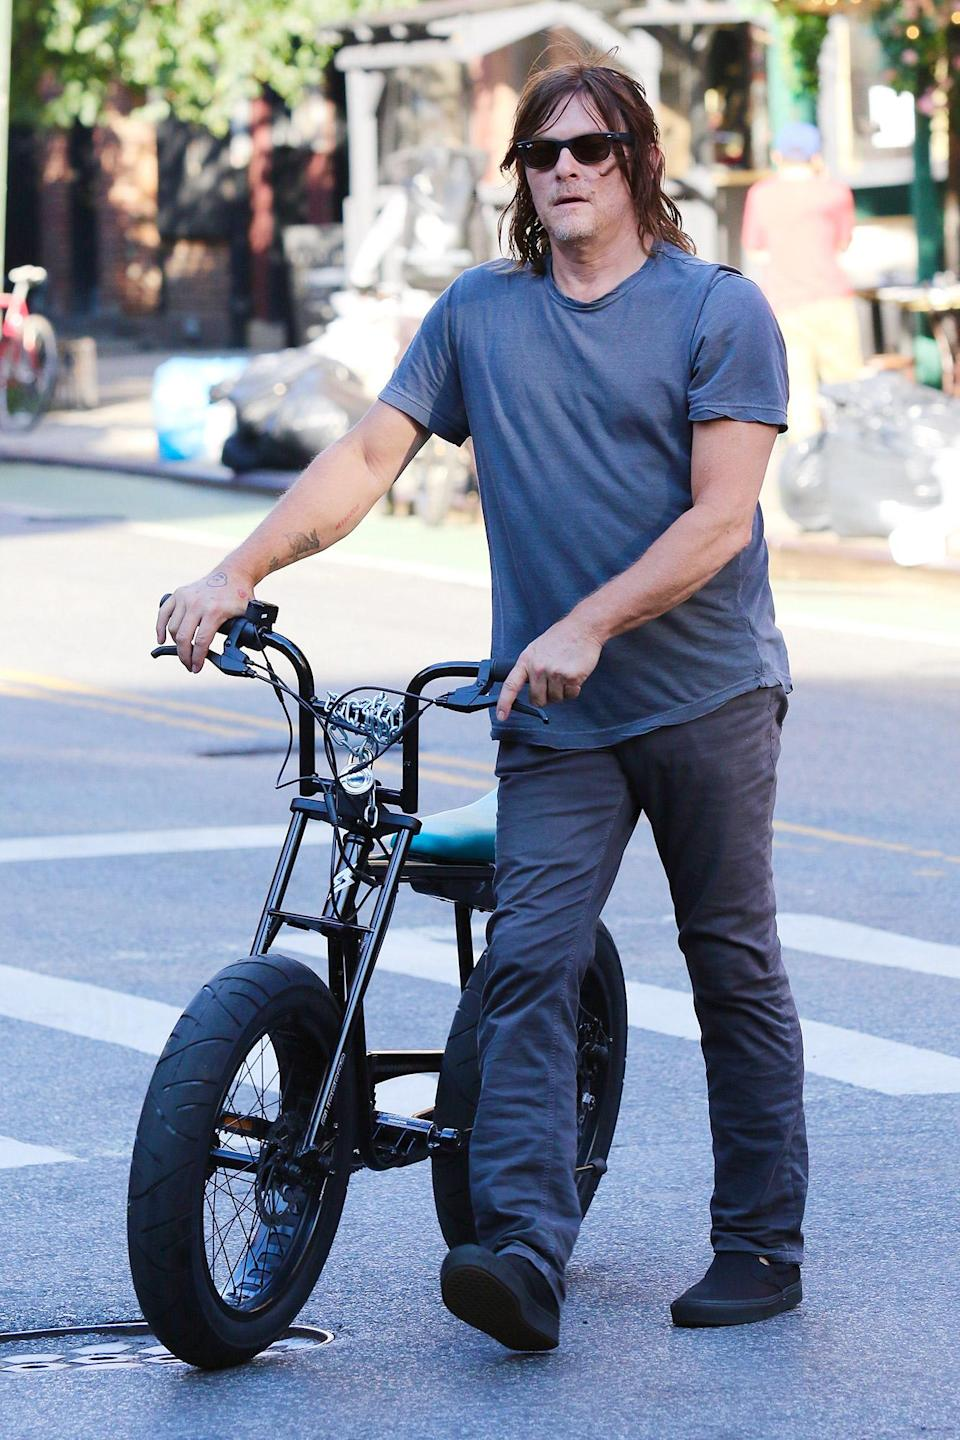 <p>Norman Reedus walks home after taking a bike ride through downtown N.Y.C. on July 31.</p>